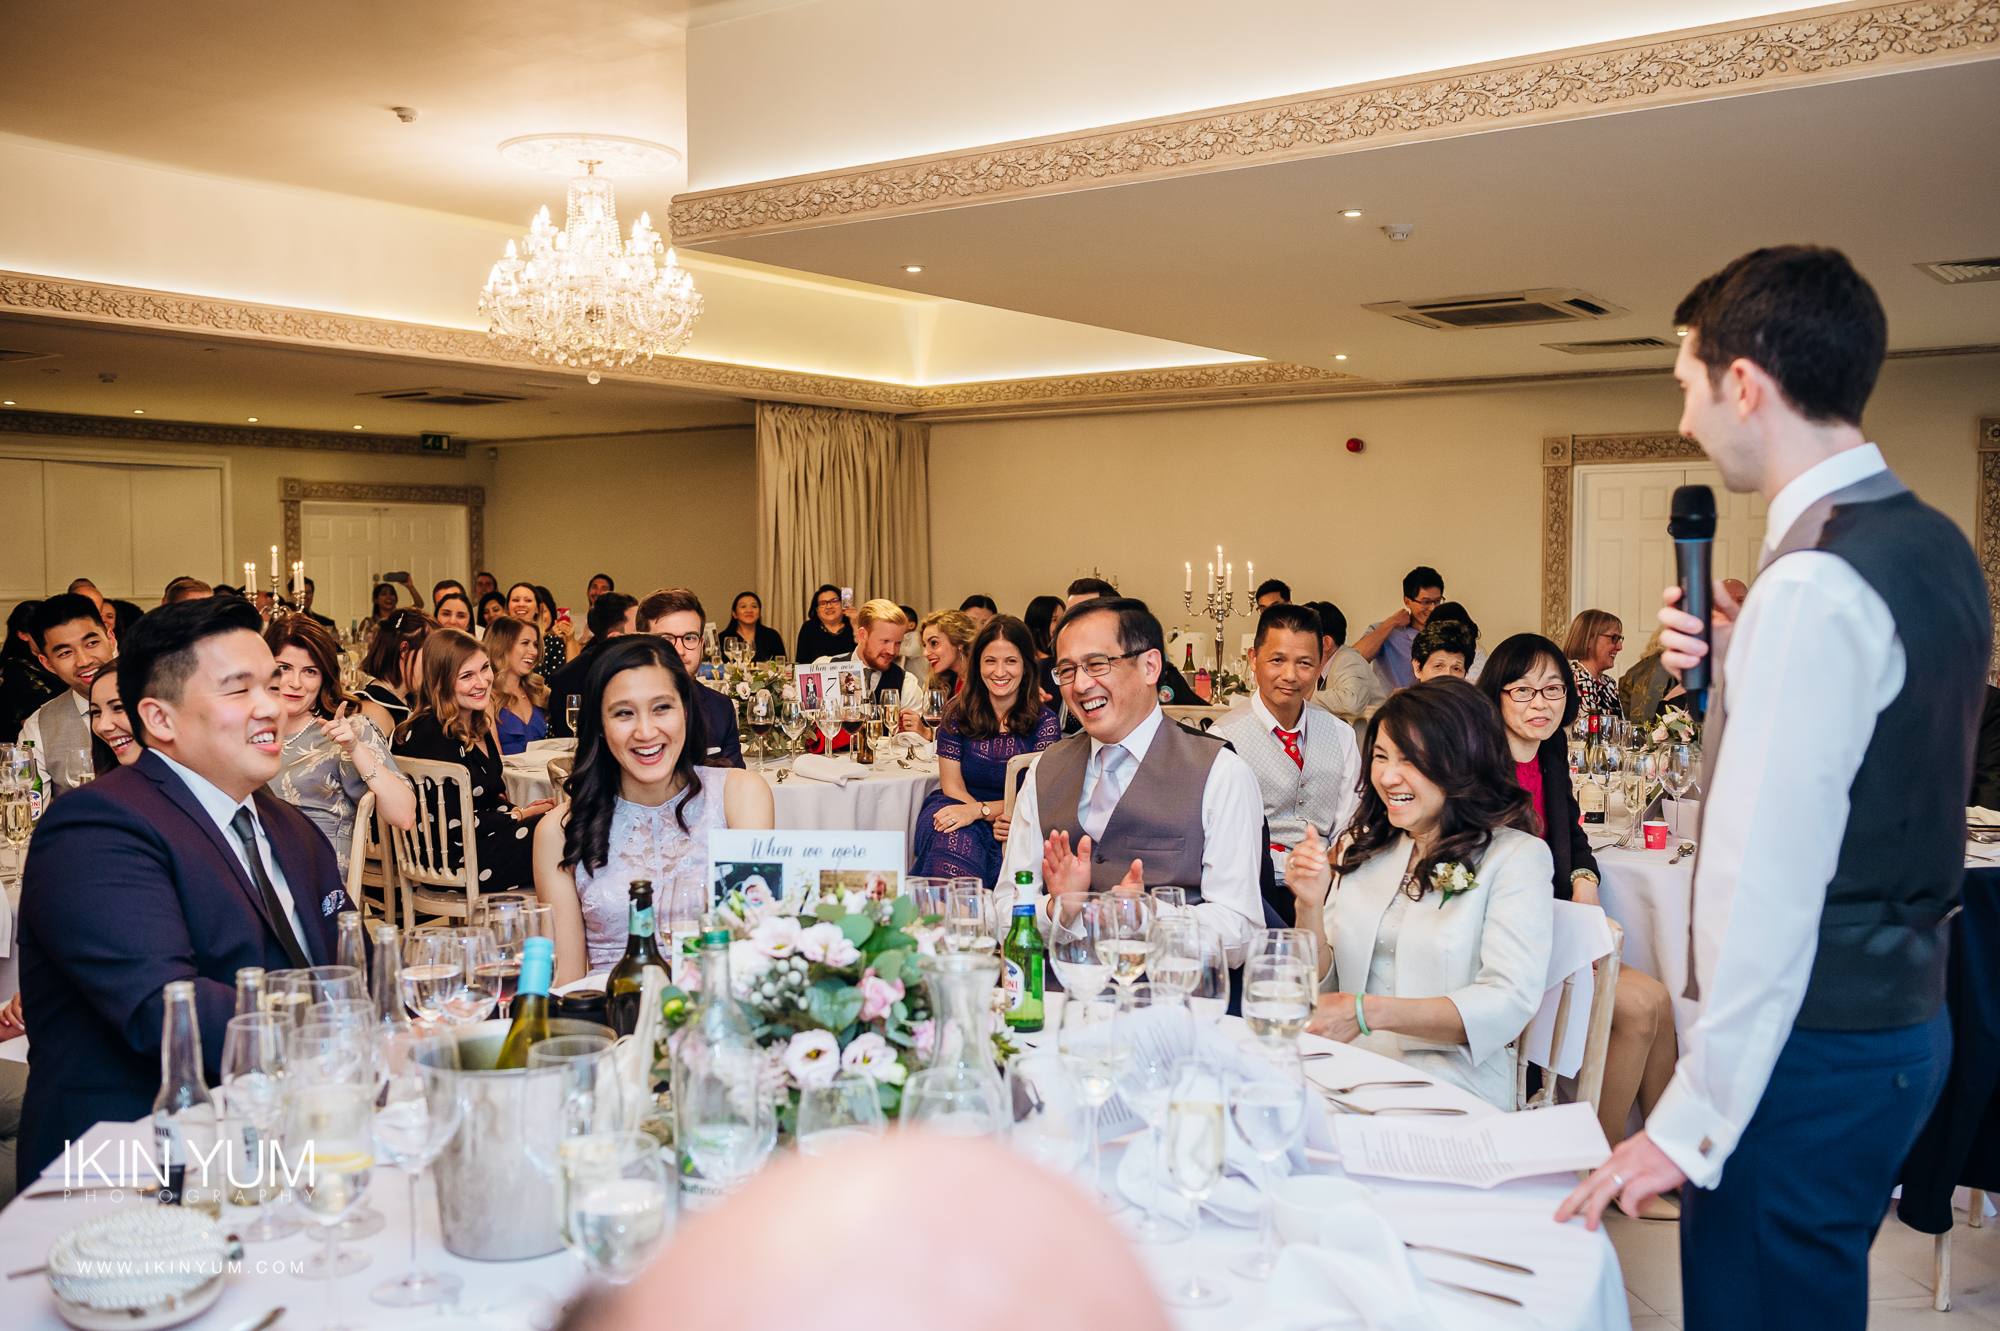 Nicola & Jonny Wedding Day - Ikin Yum Photography-124.jpg